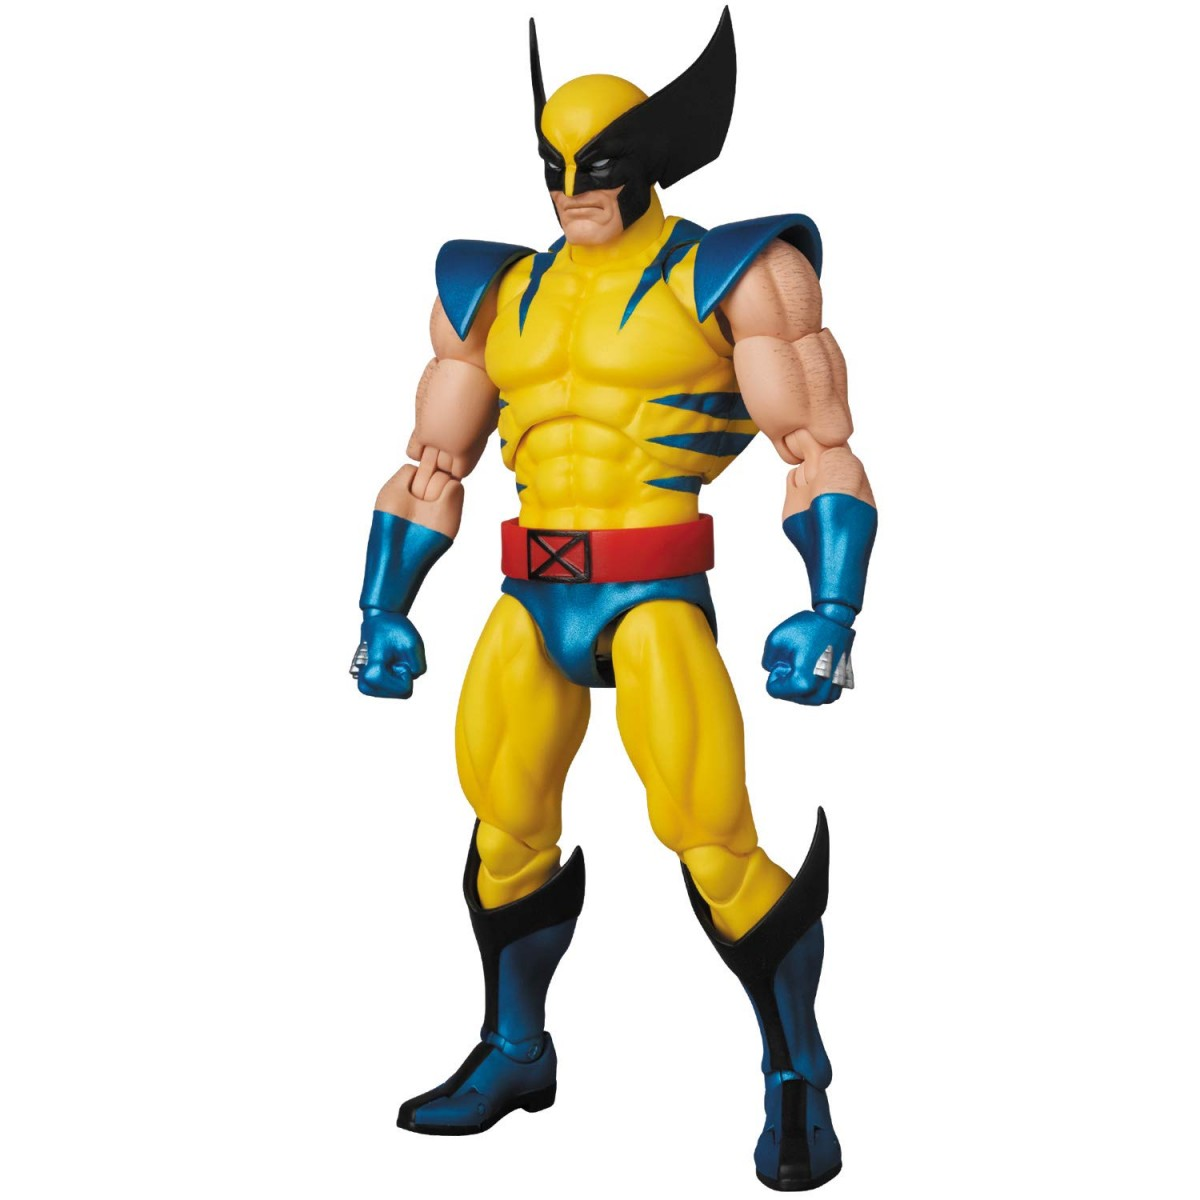 MAFEX Wolverine Marvel Comics Version Fully Revealed - The ...